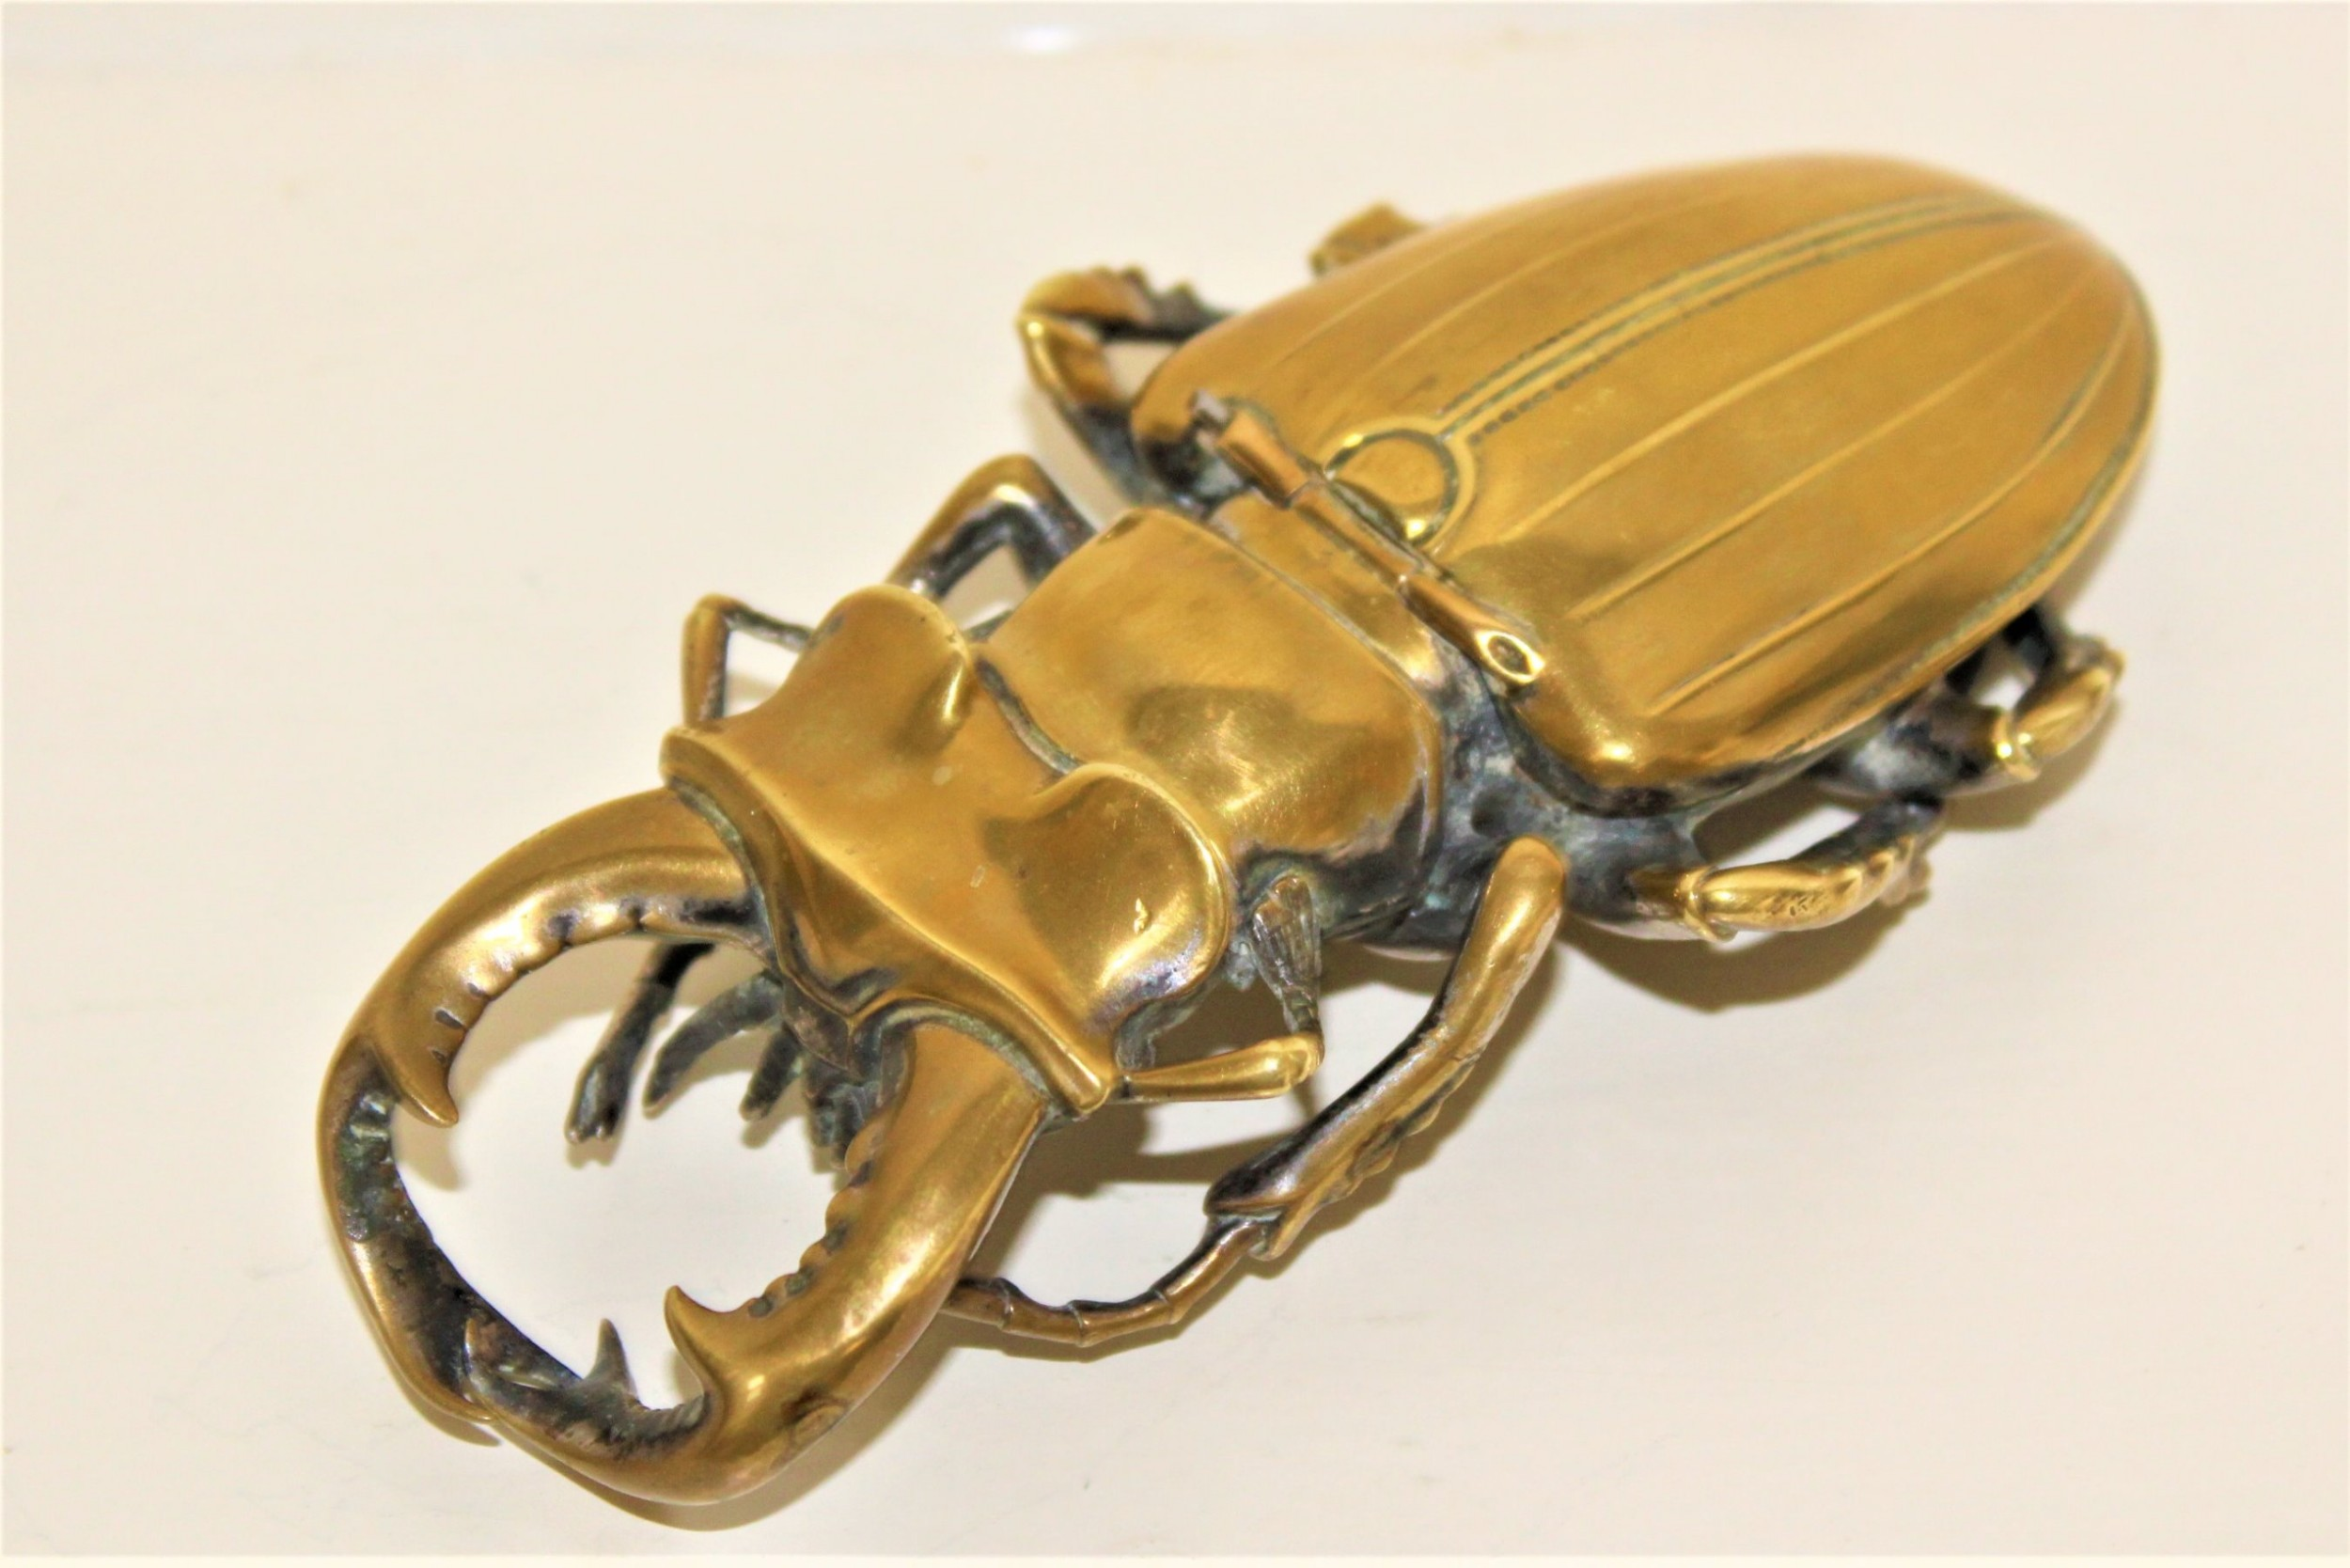 heavy cast and well formed polished bronze stag beetle container possibly japanese circa 1880